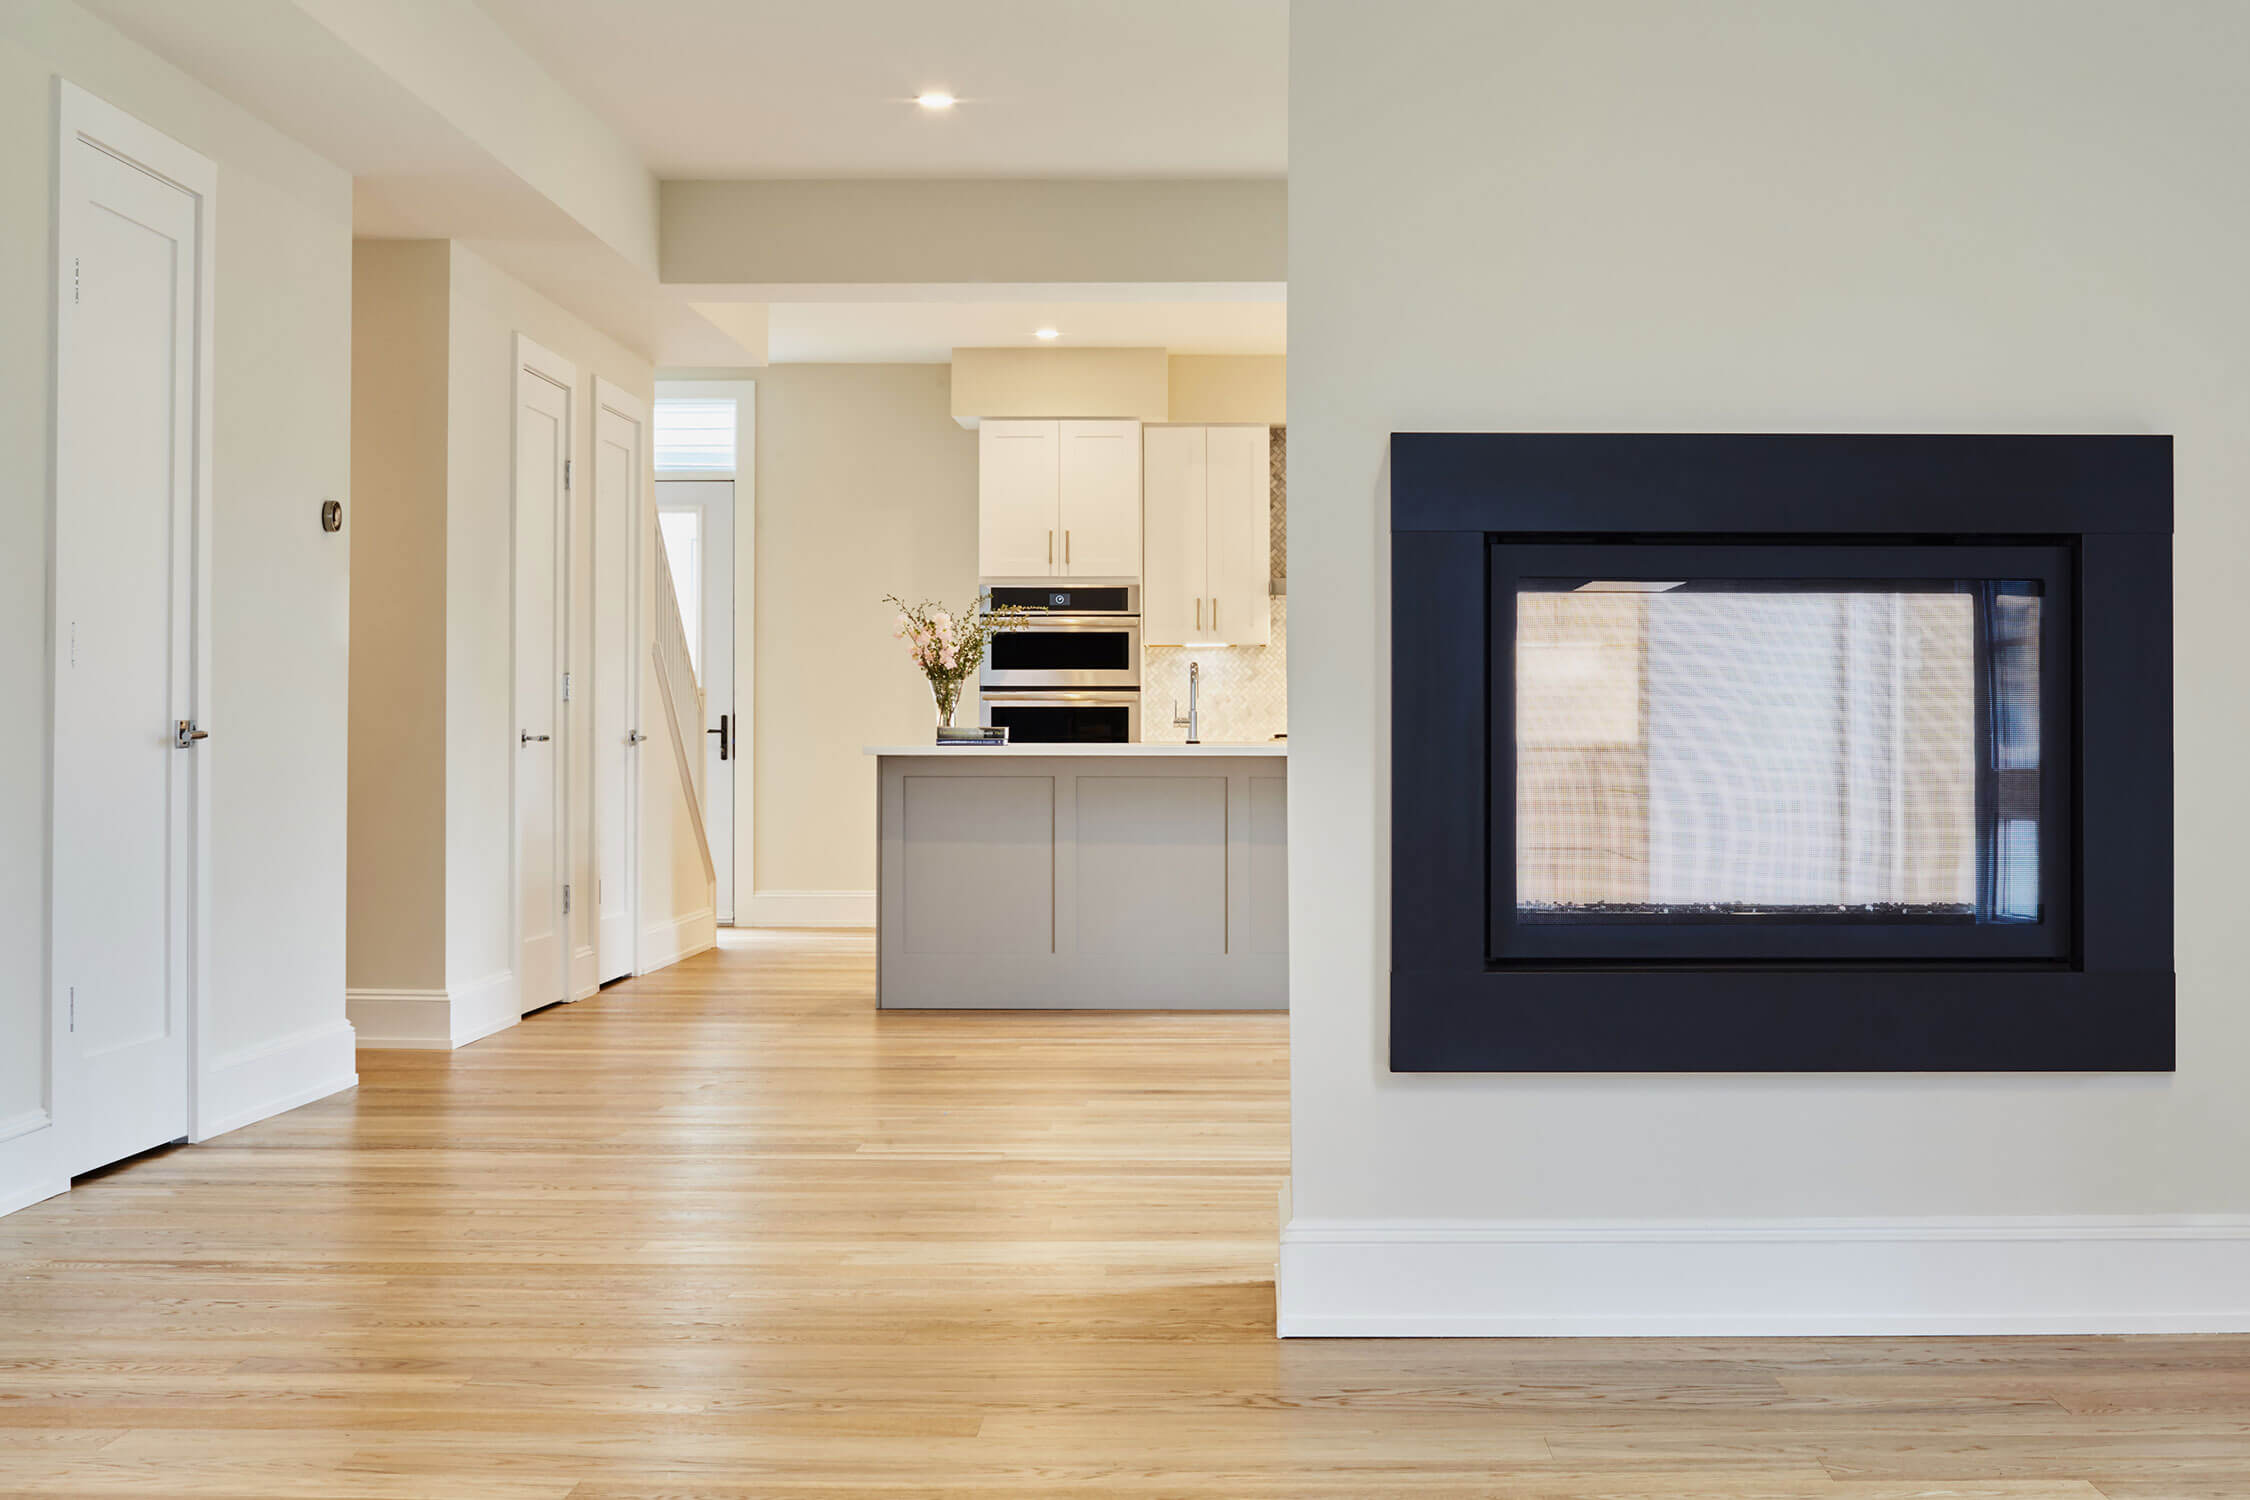 See-through fireplace with view of kitchen island in the background, with wooden floors.